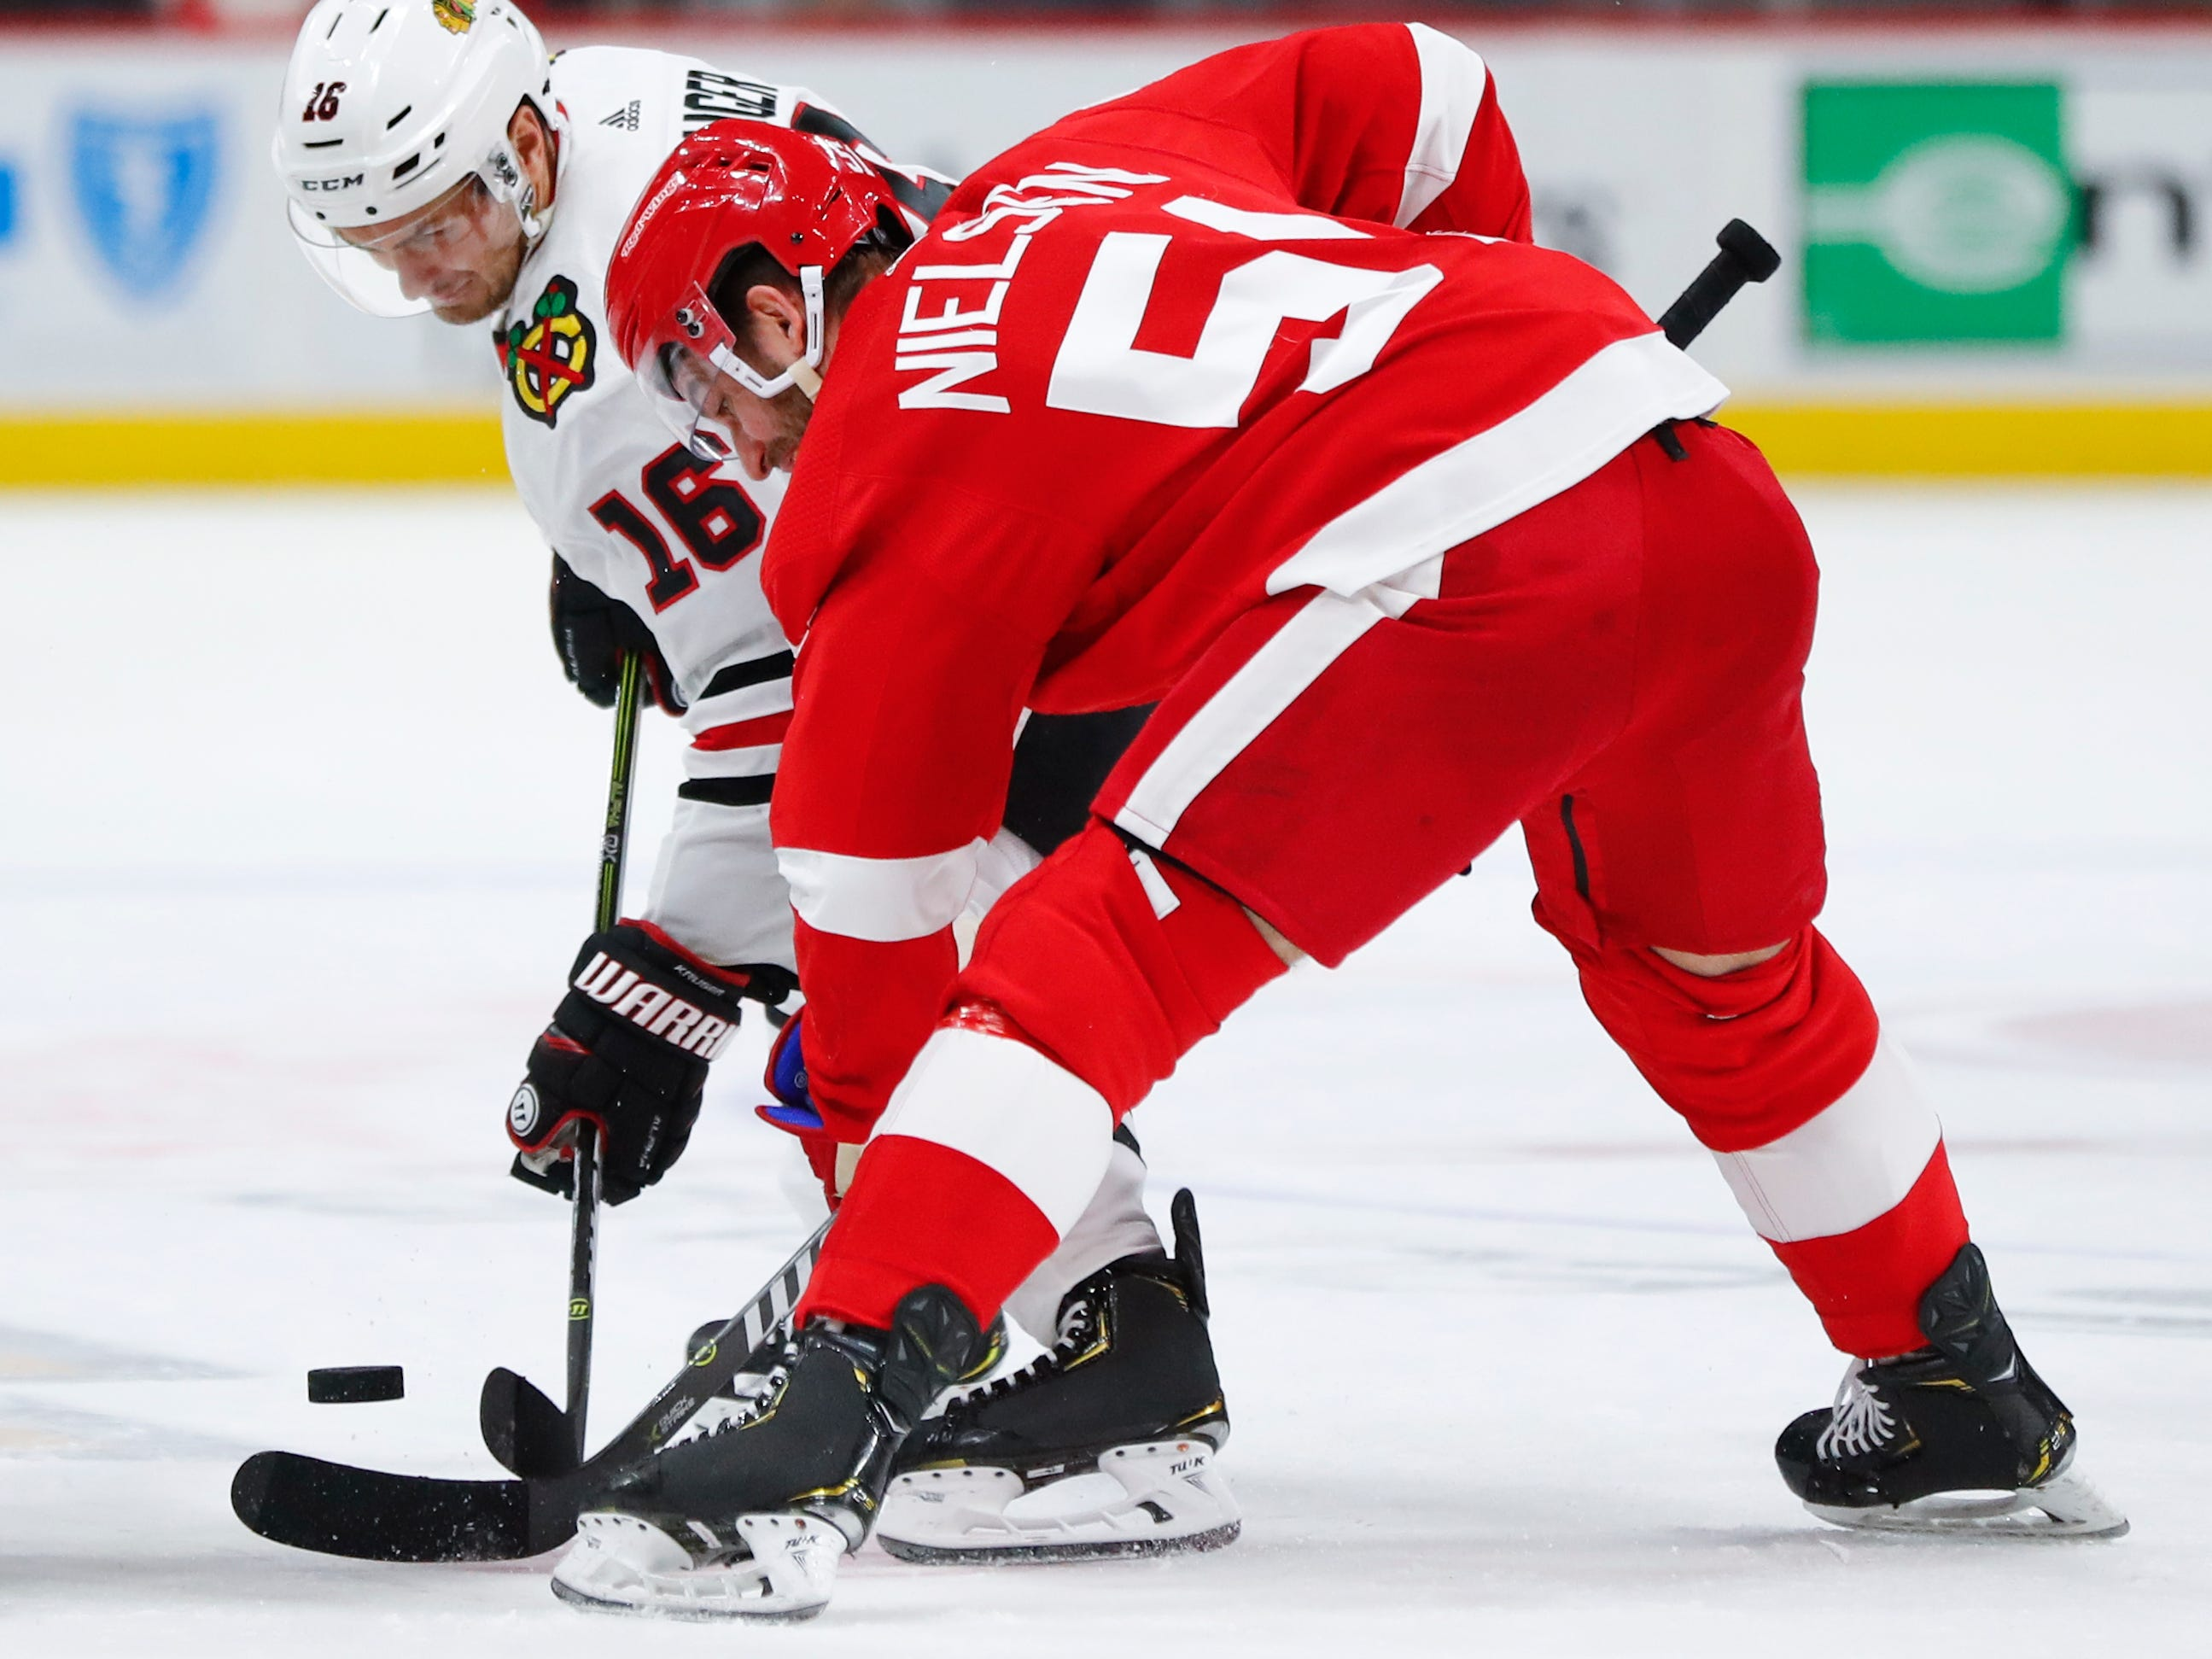 Chicago Blackhawks center Marcus Kruger (16) and Detroit Red Wings center Frans Nielsen (51) battle for the puck in the first period of an NHL hockey game Wednesday, Feb. 20, 2019, in Detroit.